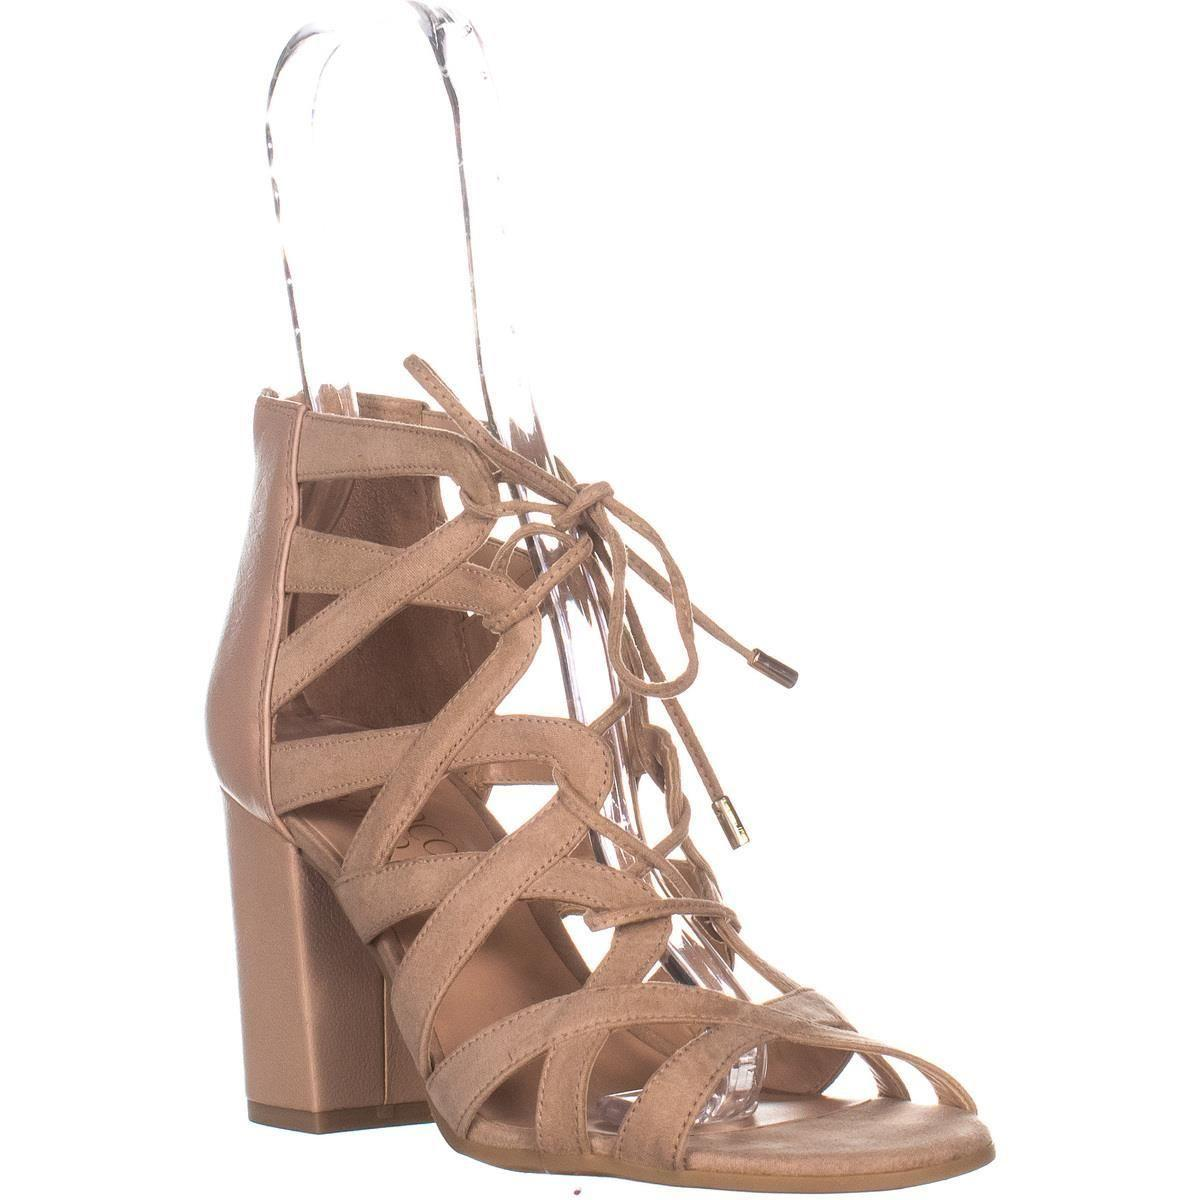 204f2b8d5294 Lyst - Franco Sarto Meena Heeled Lace-up Sandals in Natural - Save 71%